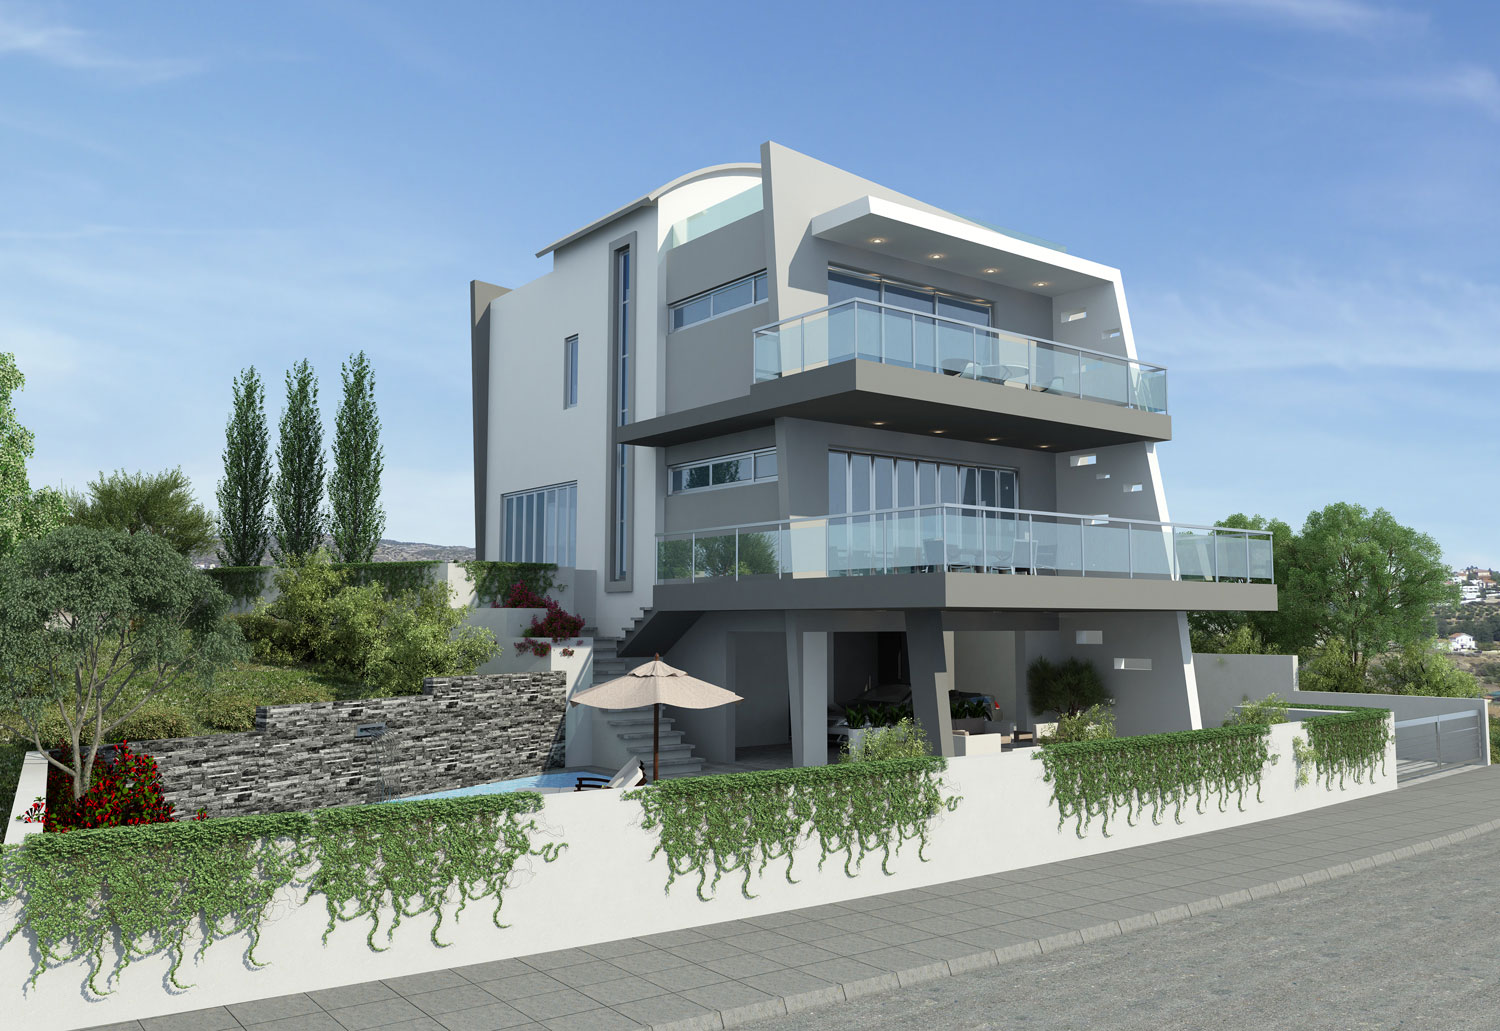 New home designs latest - Contemporary house designs ...